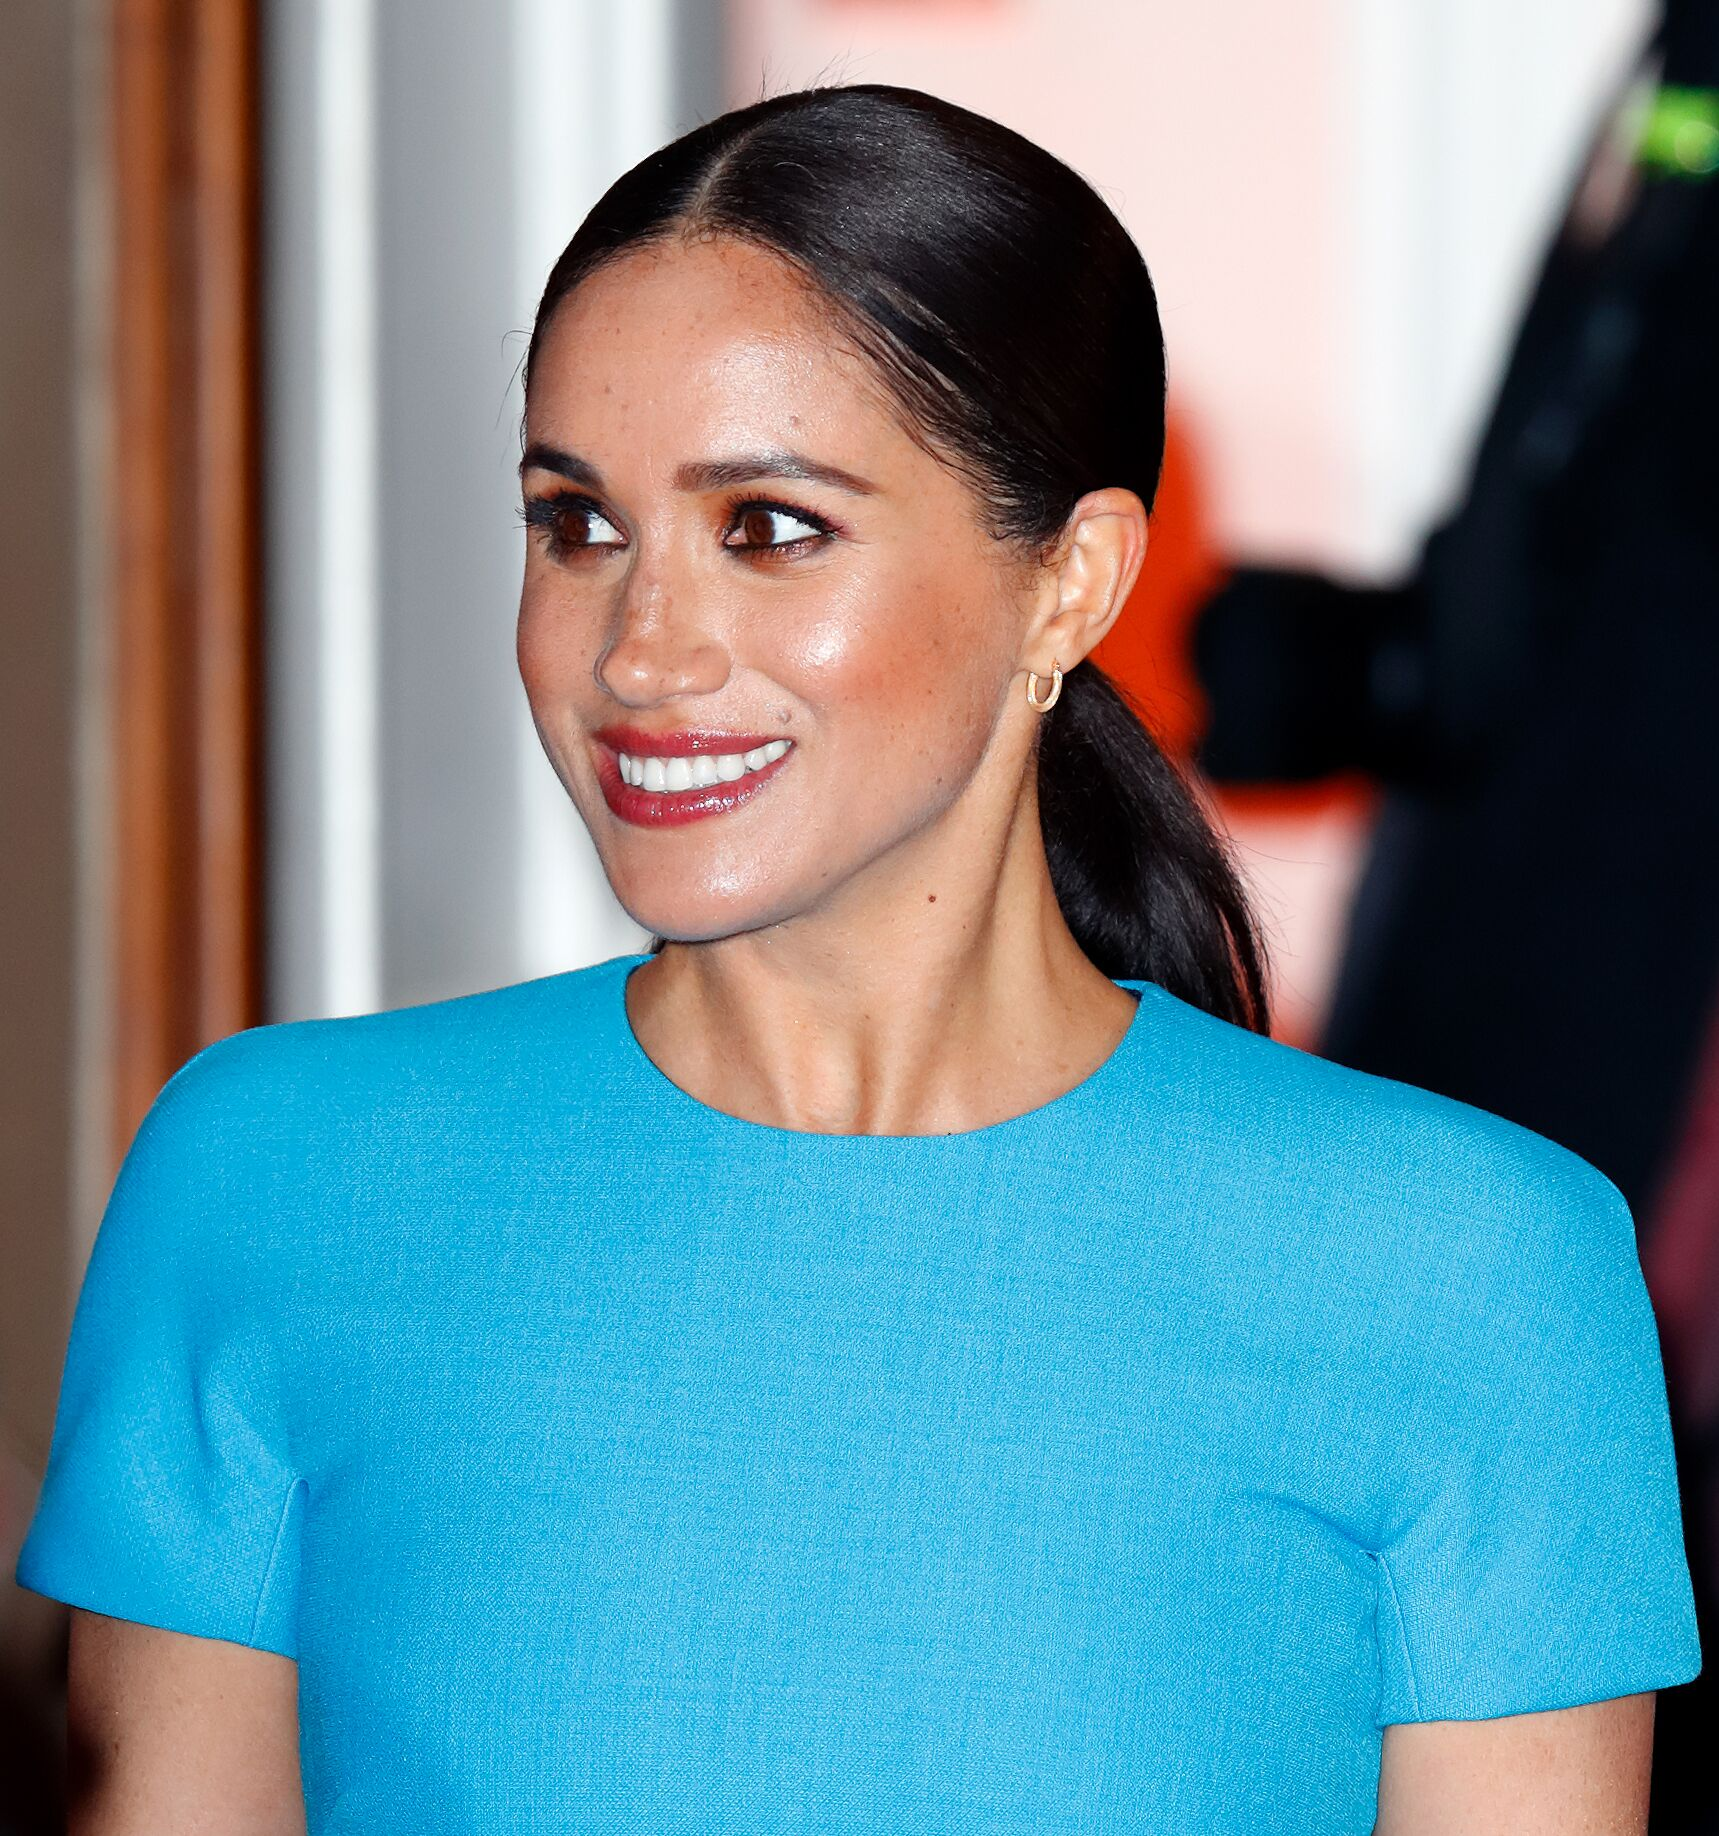 Meghan Markle attends The Endeavour Fund Awards at Mansion House on March 5, 2020 in London, England. | Source: Getty Images